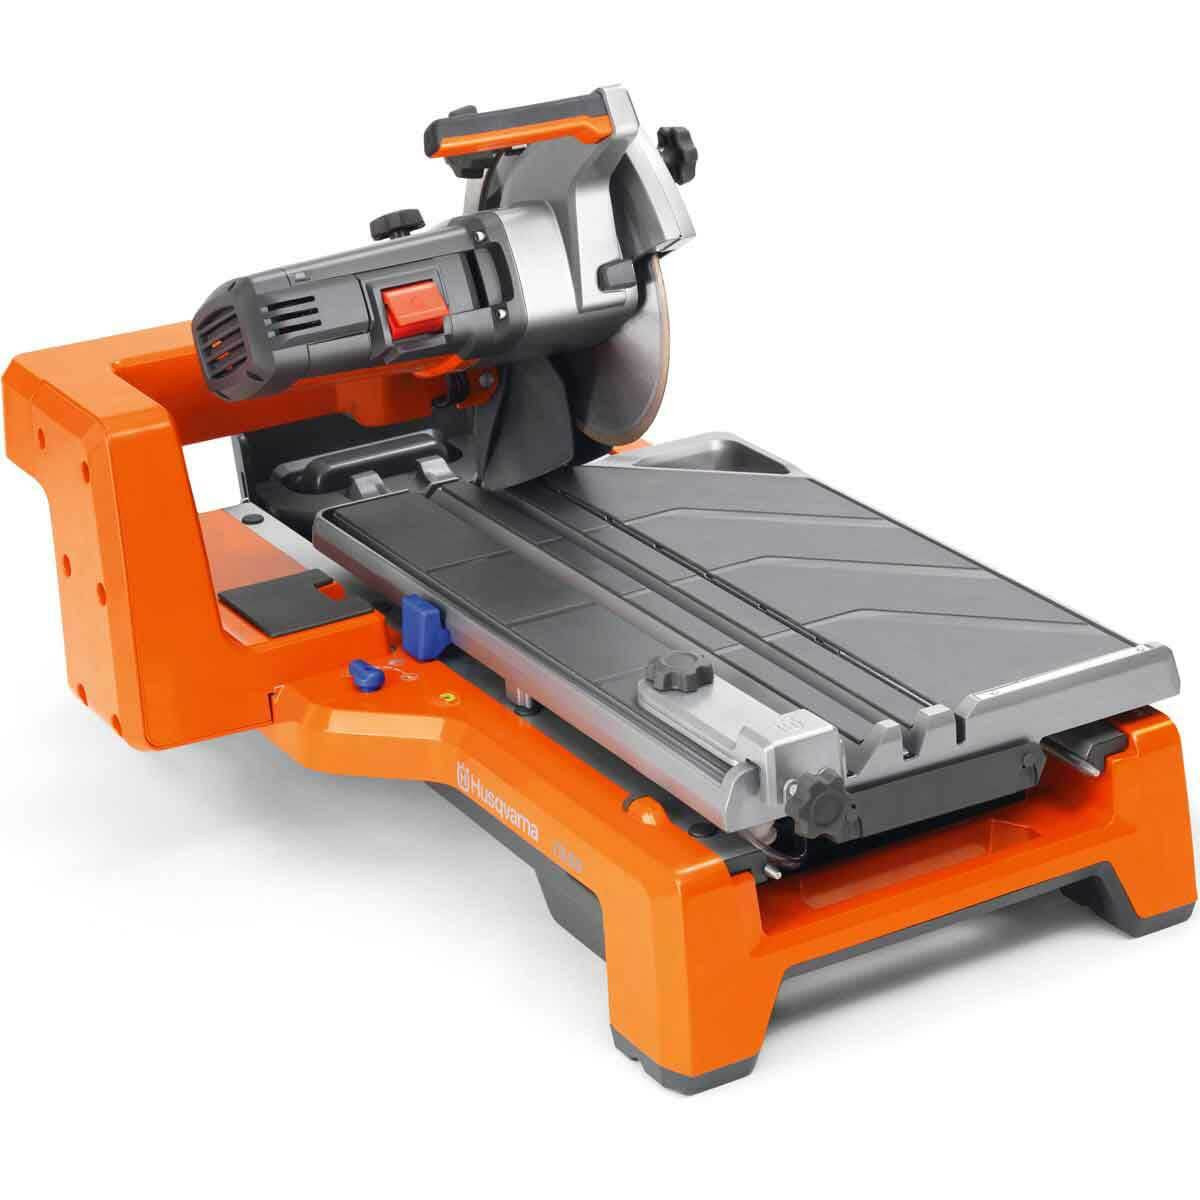 Husqvarna TS60 tile saw with plunge cut capability